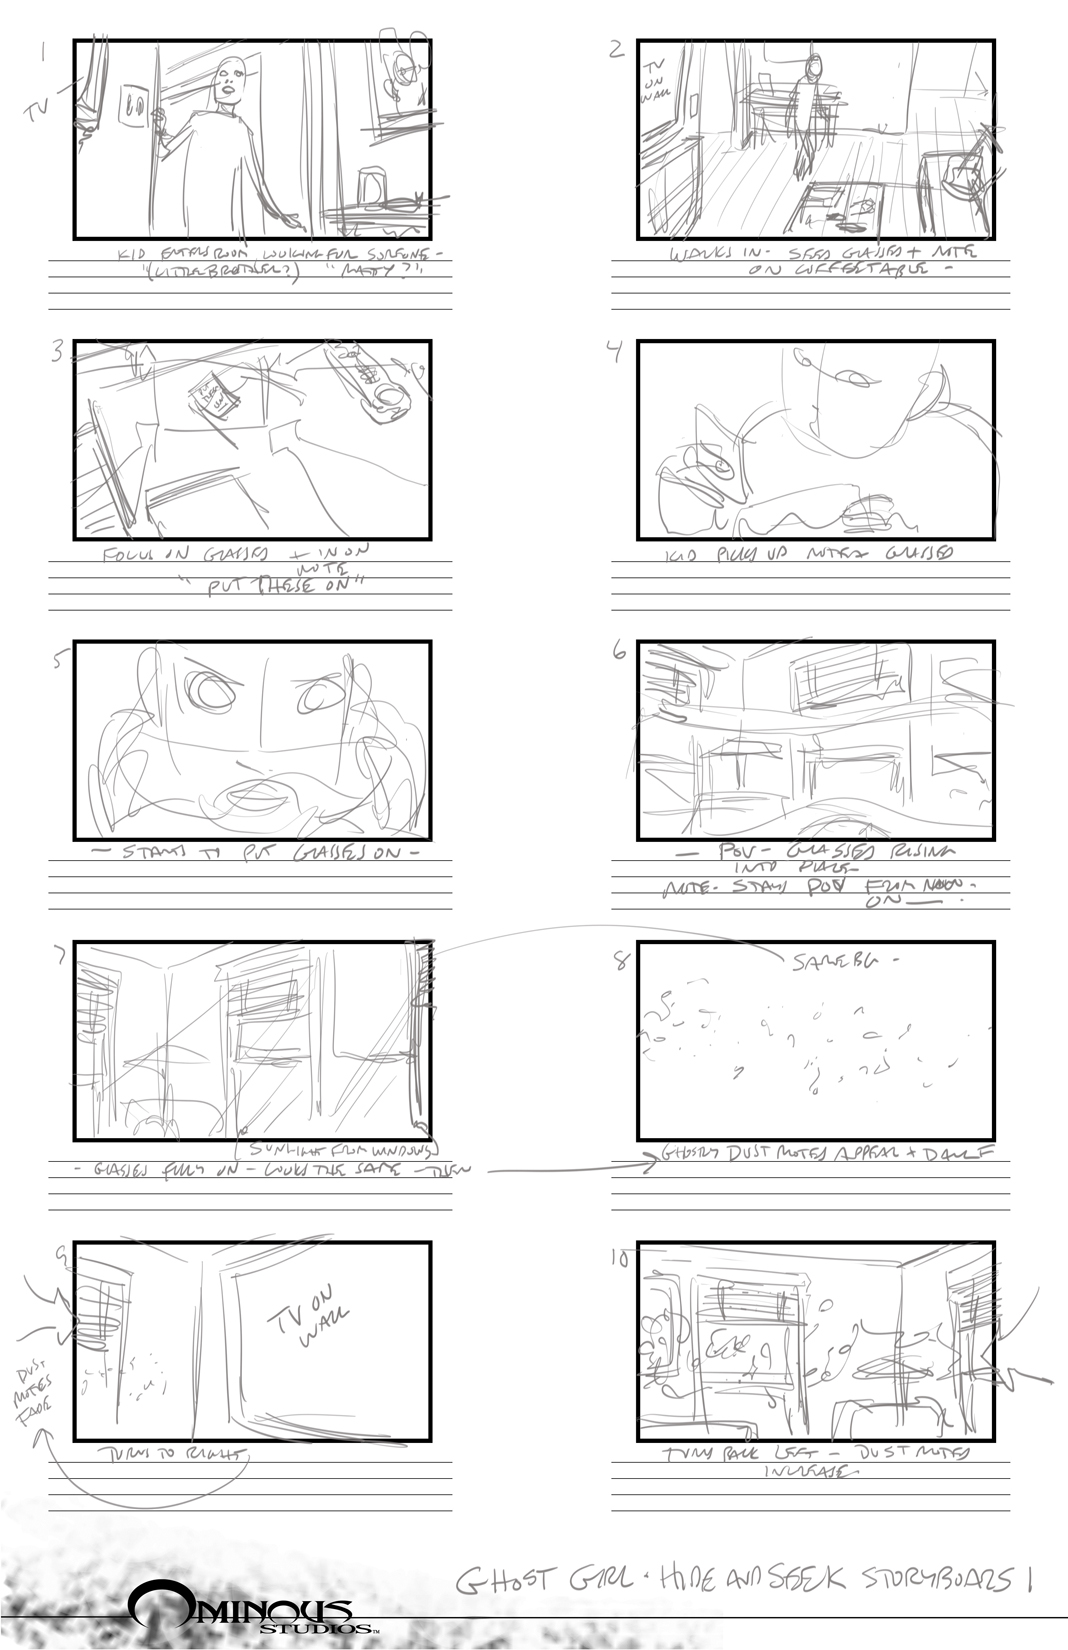 GhostGirl_HideAndSeek_Storyboards_Roughs